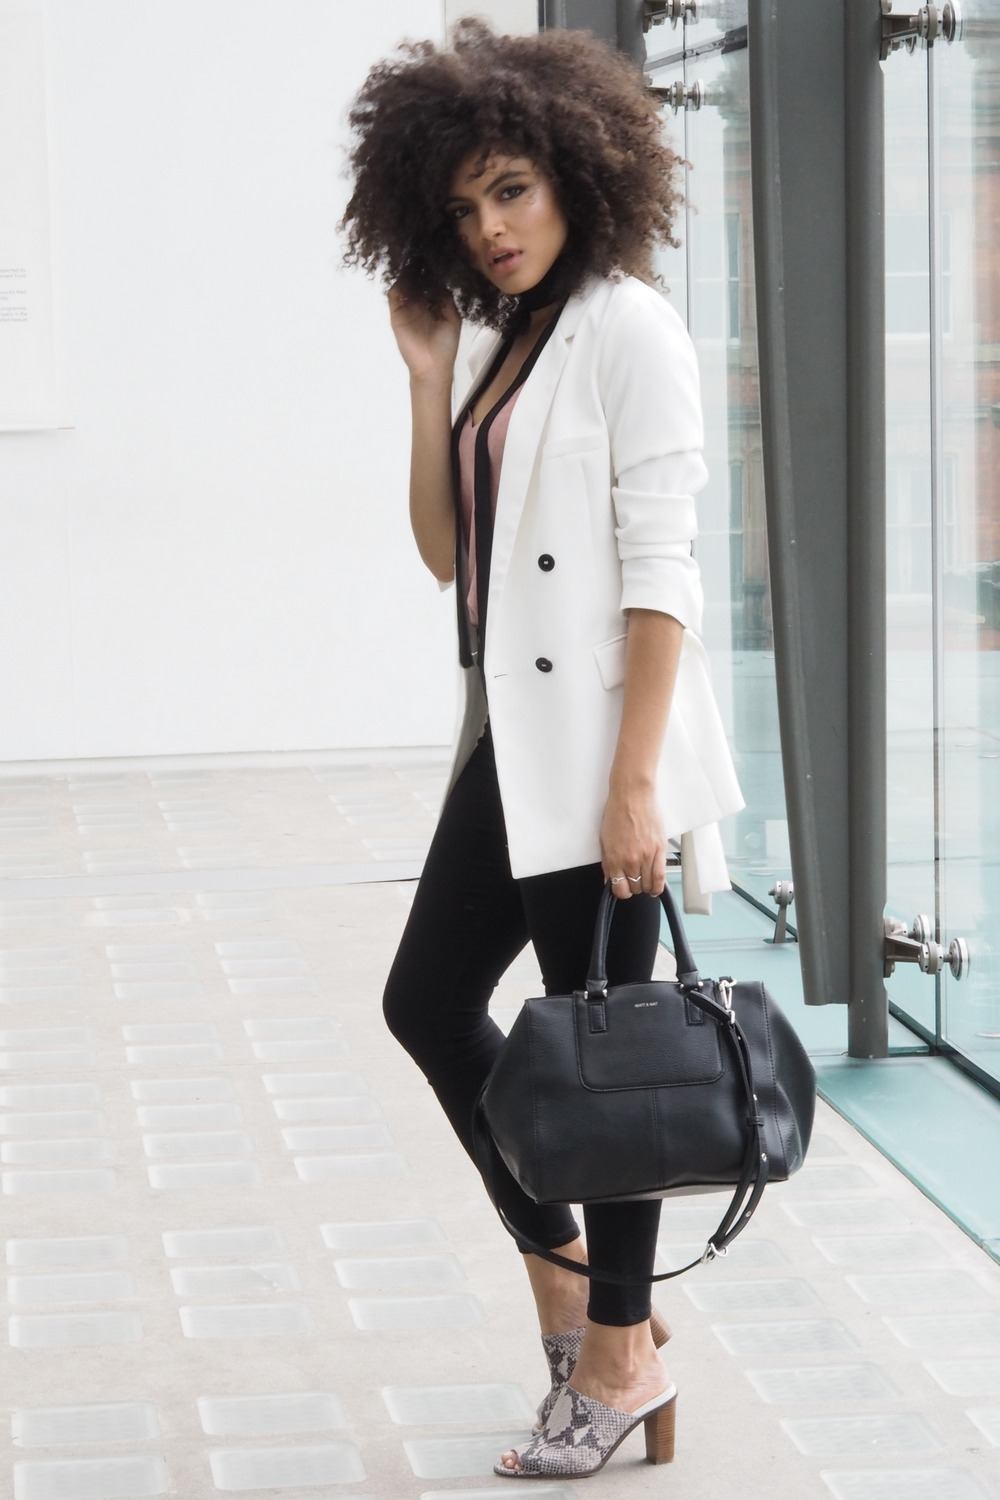 White blazer and black skinny jeans outfit